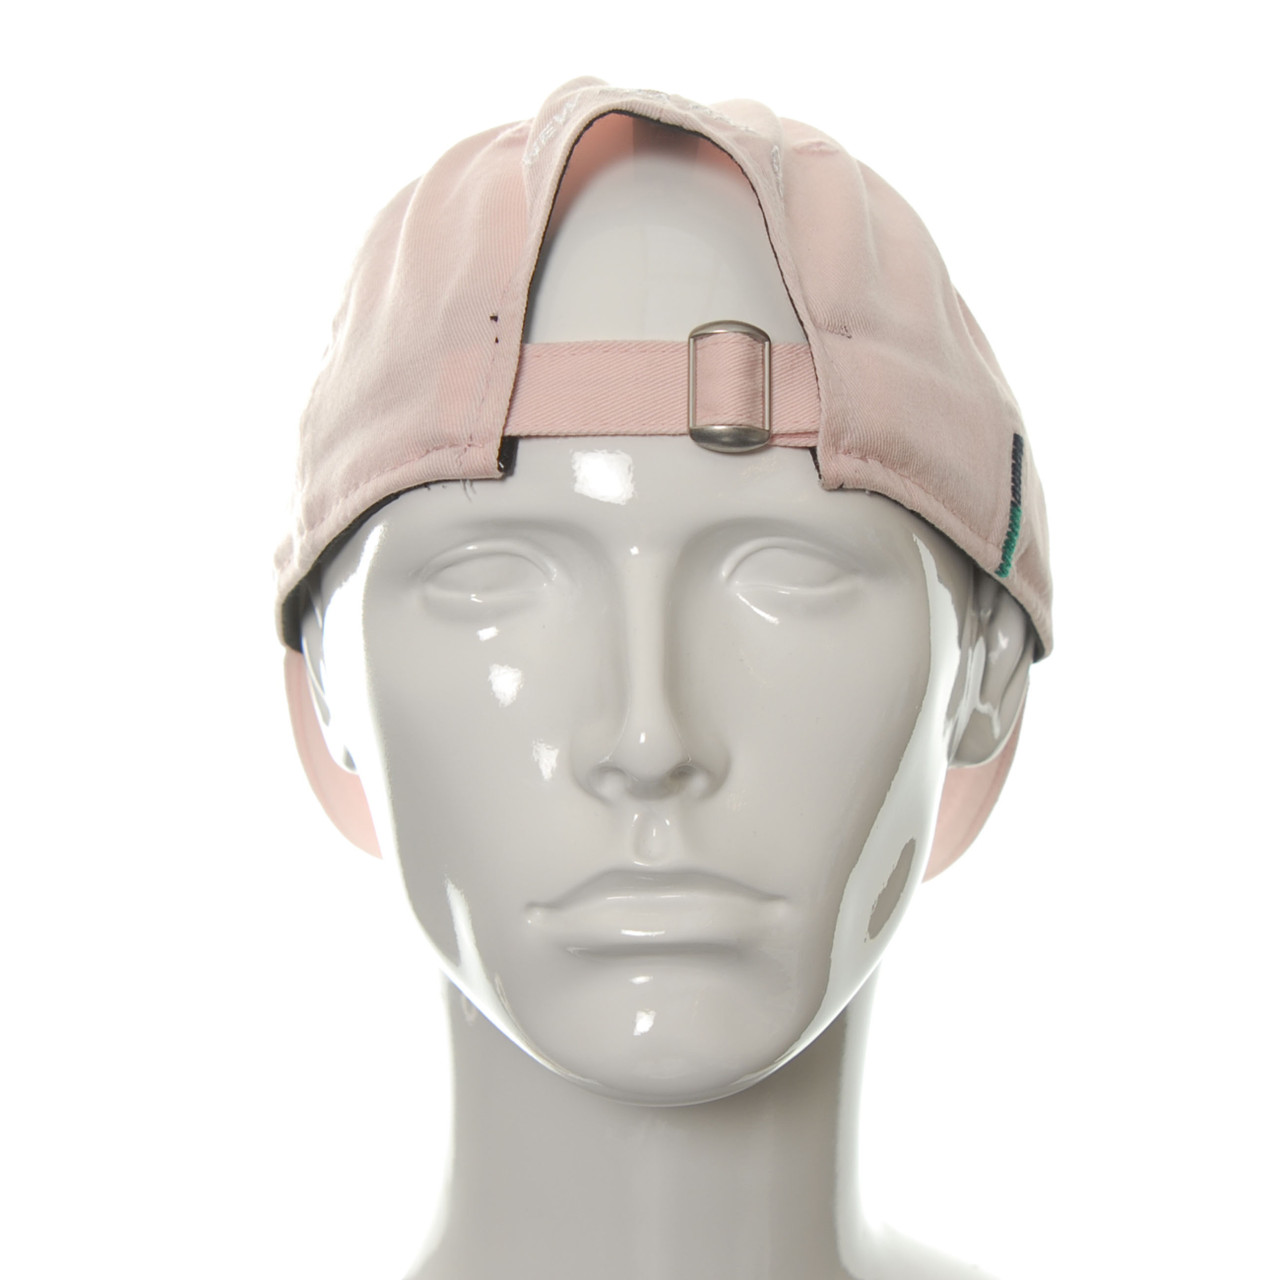 New Era 9FIFTY Low Profile Sunbleach Unstructured Pink Adjustable Baseball Hat